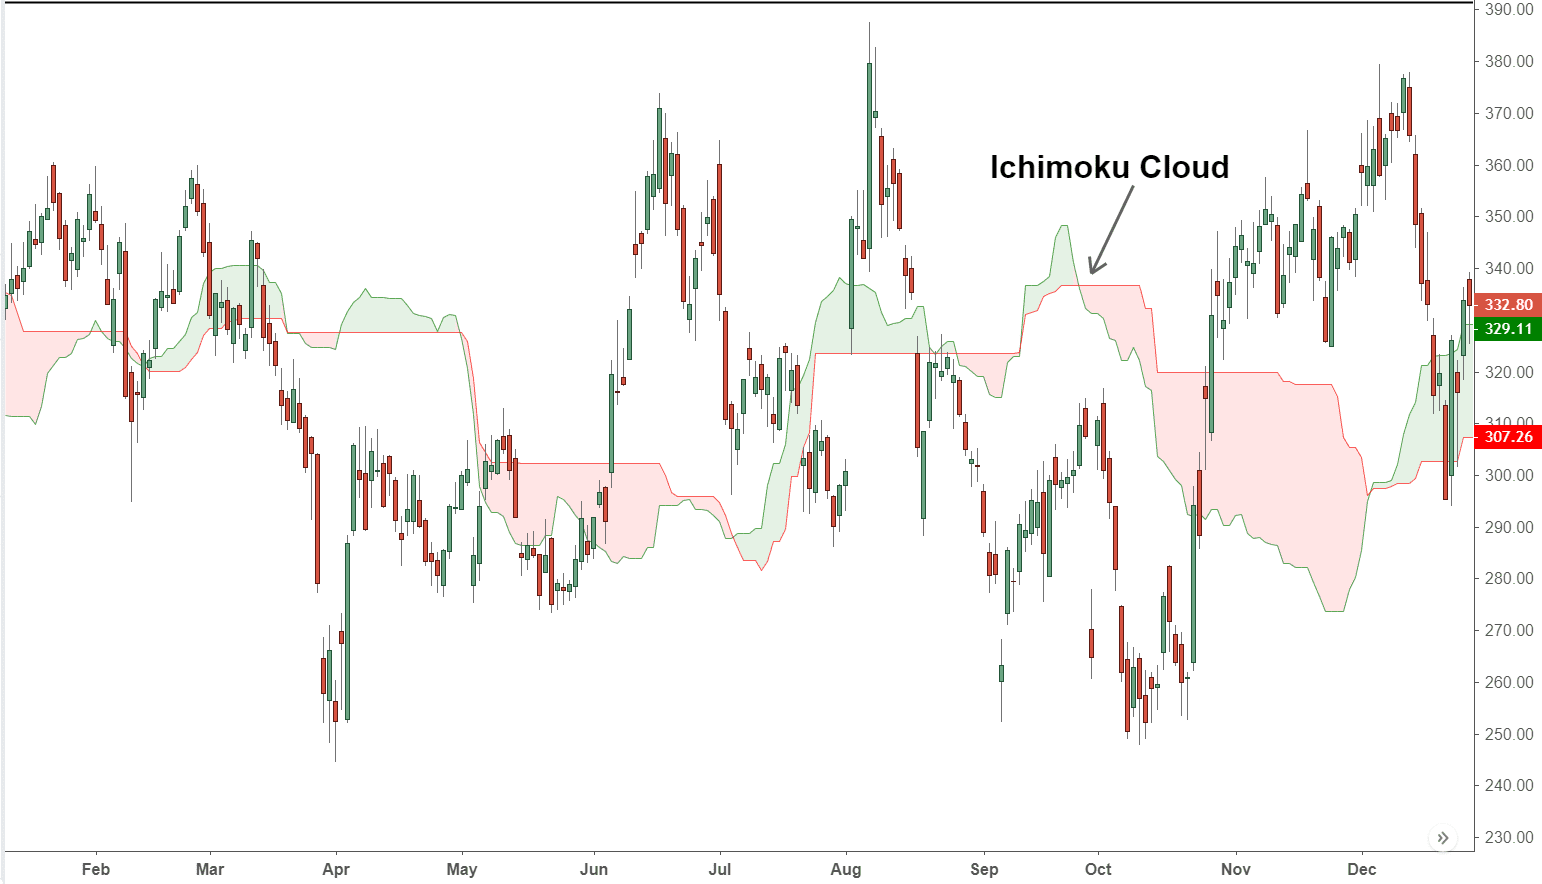 Ichimoku Cloud Definition and Uses